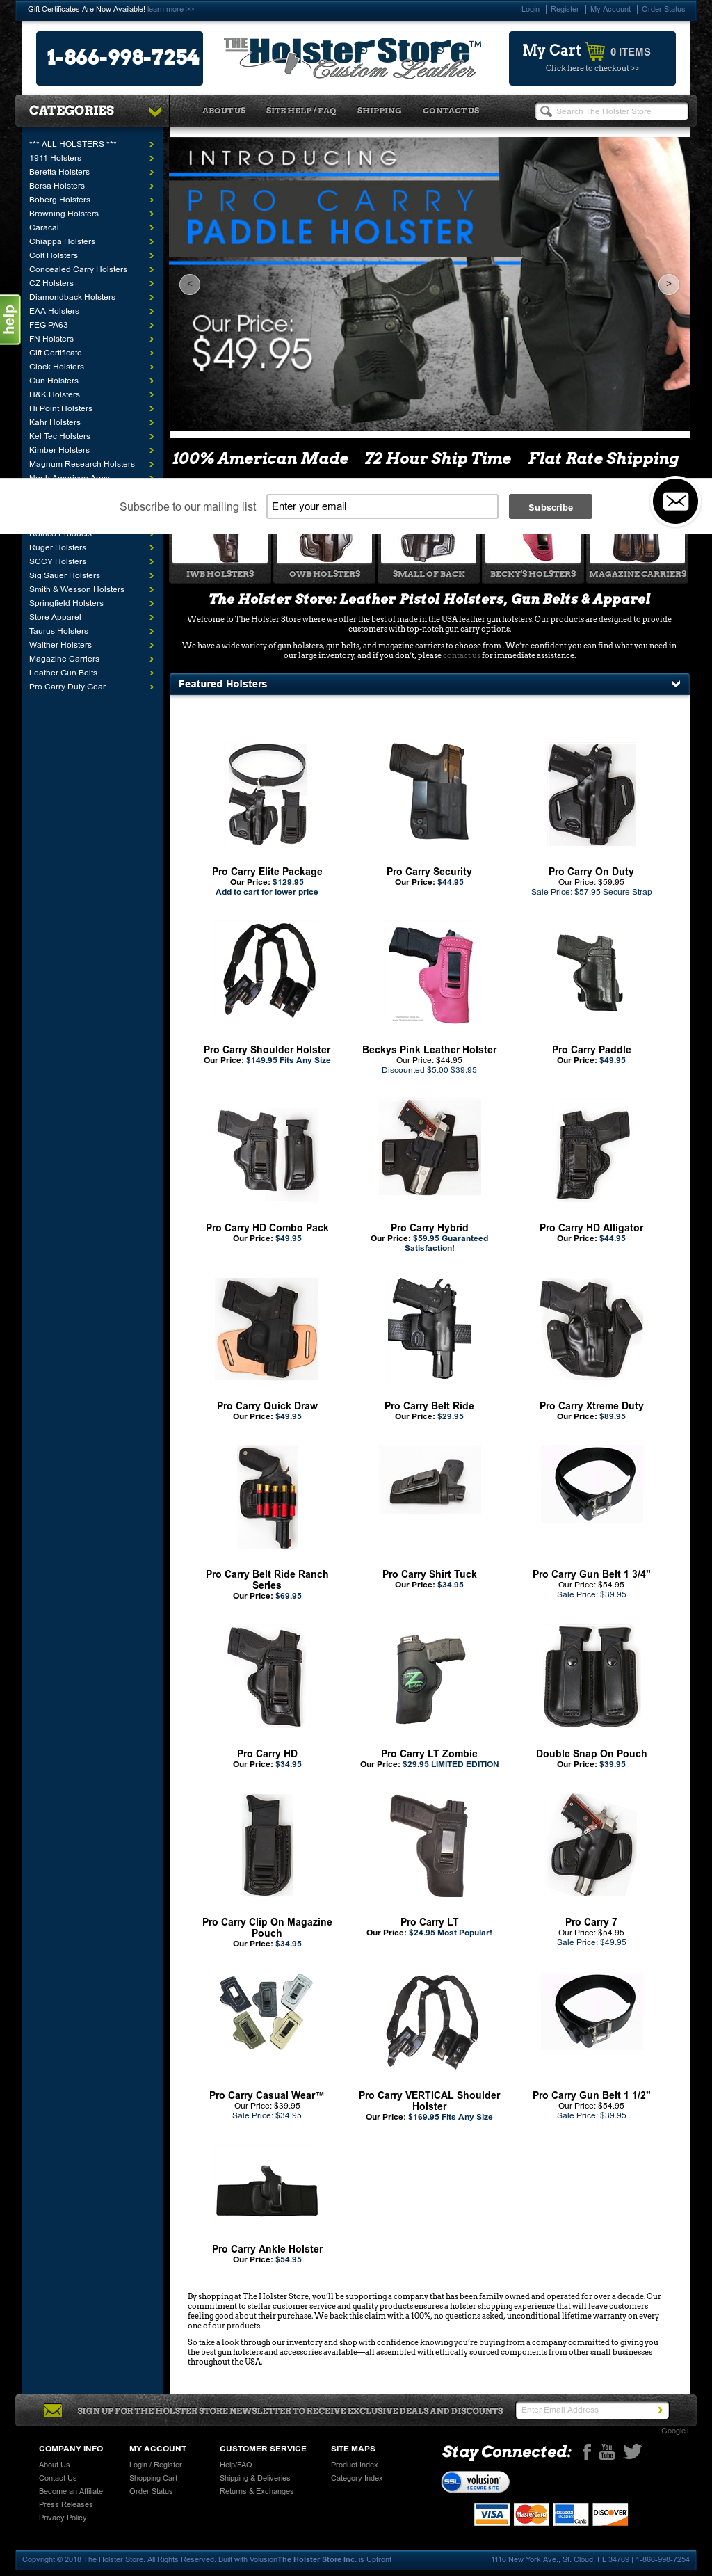 The Holster Store Competitors, Revenue and Employees - Owler Company